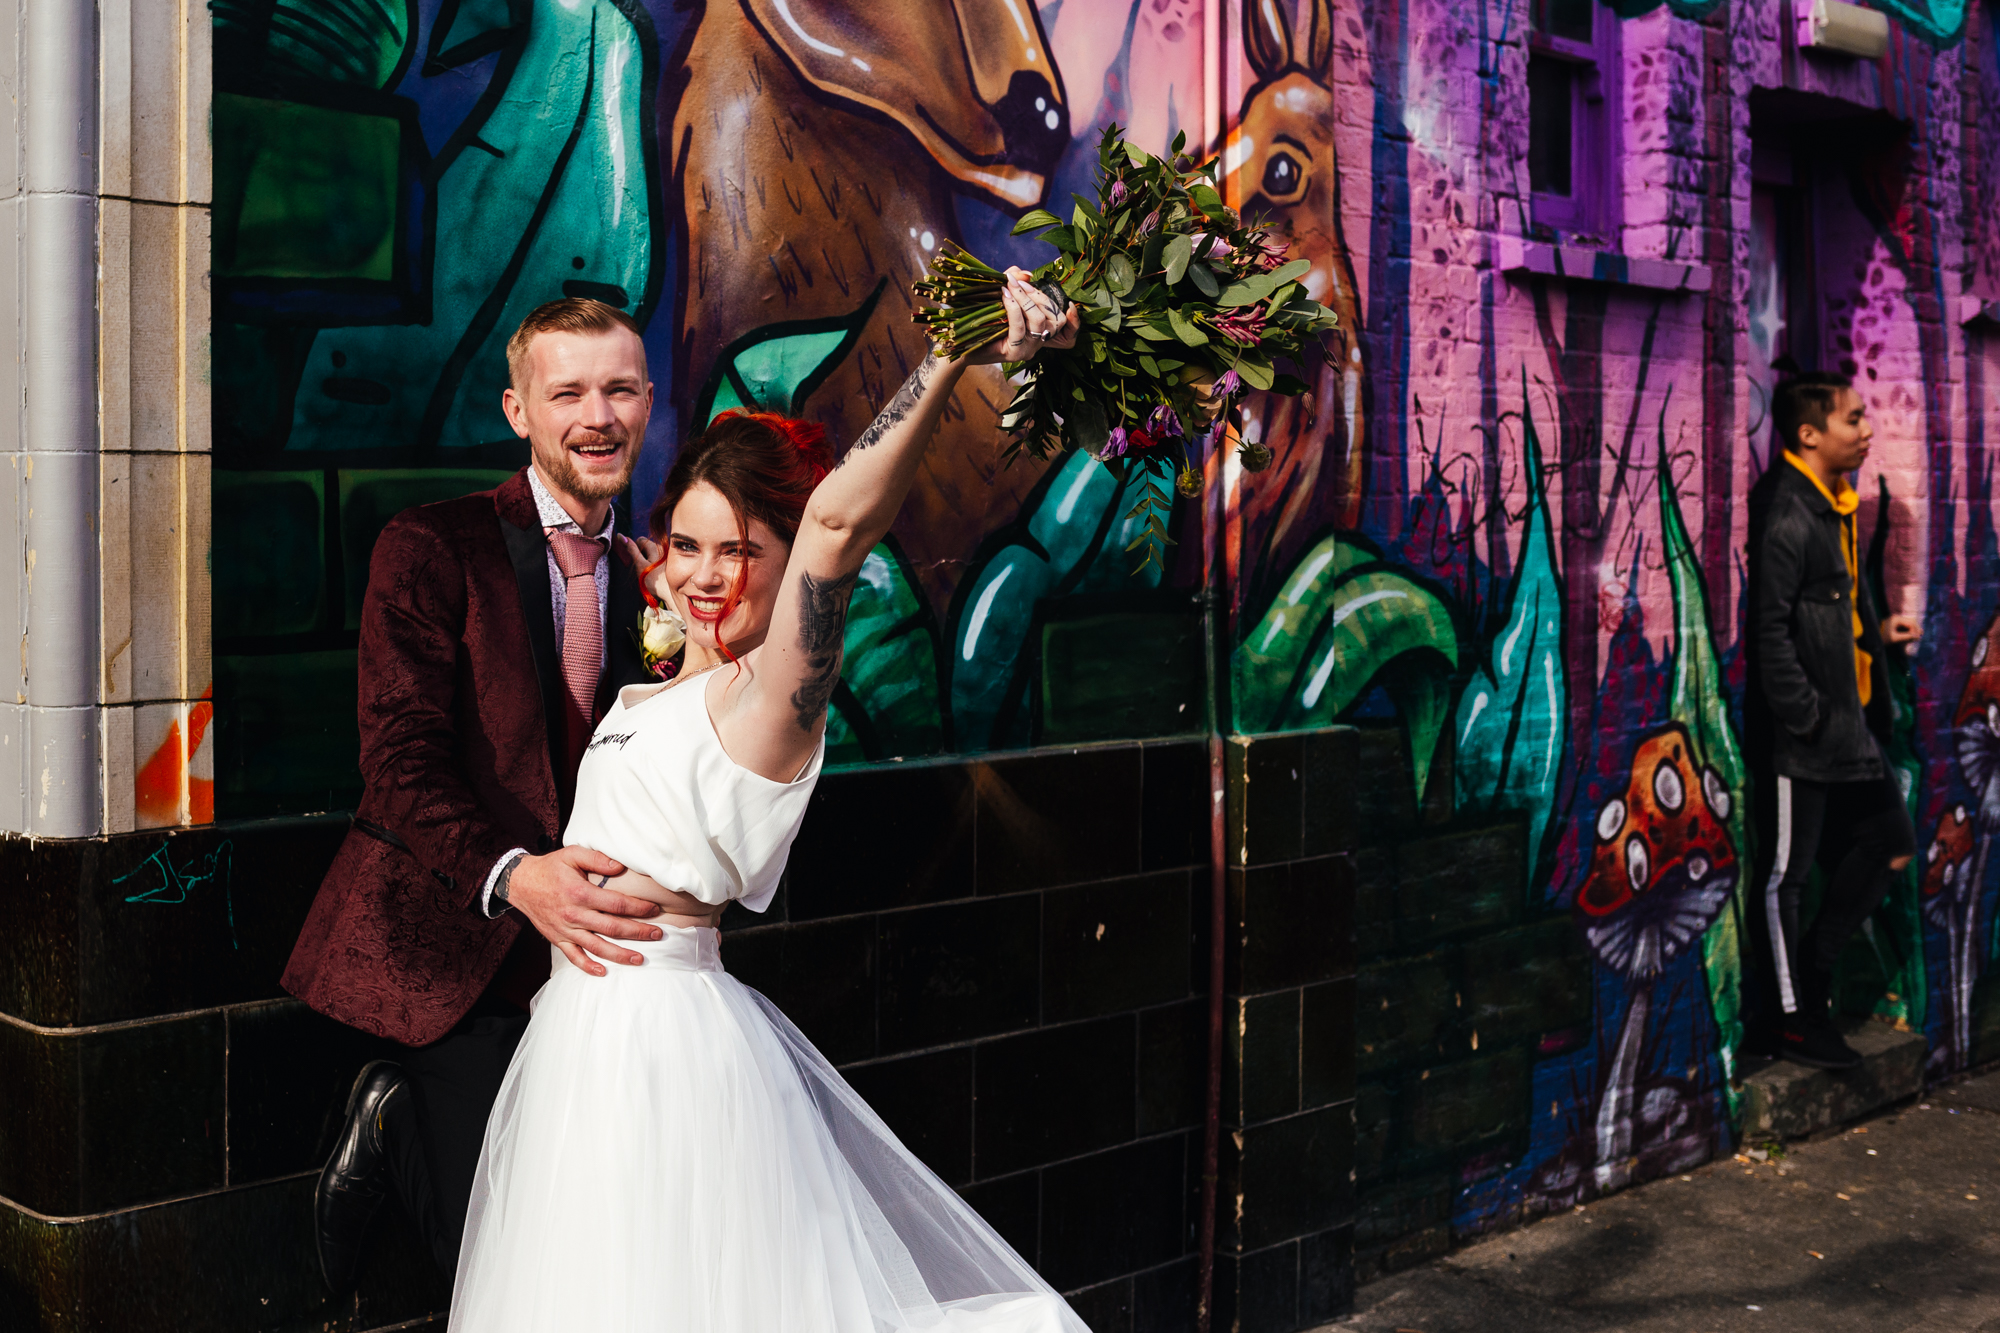 Wedding Photography Nottingham - Bride and groom stood in front of graffiti wall